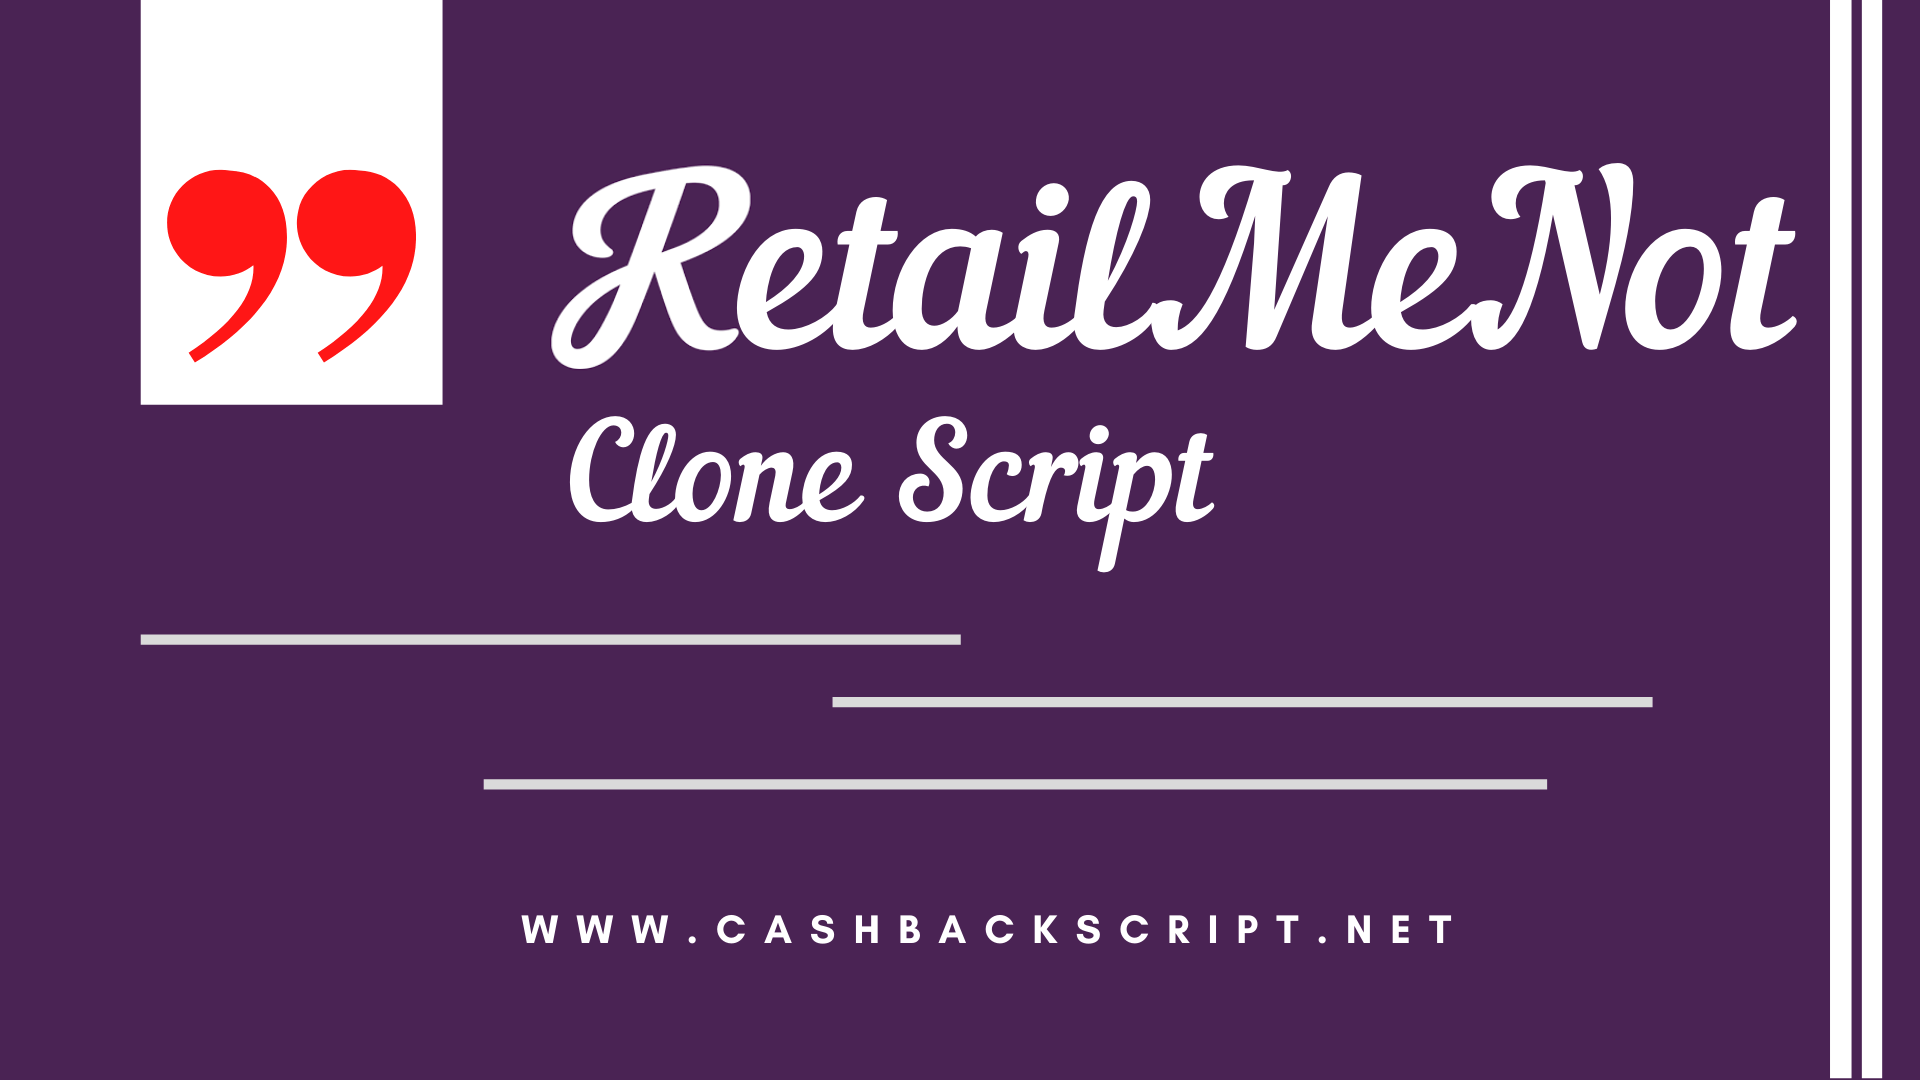 RetailMeNot Clone Script: All the Stats, Facts, and Data You'll Ever Need to Know